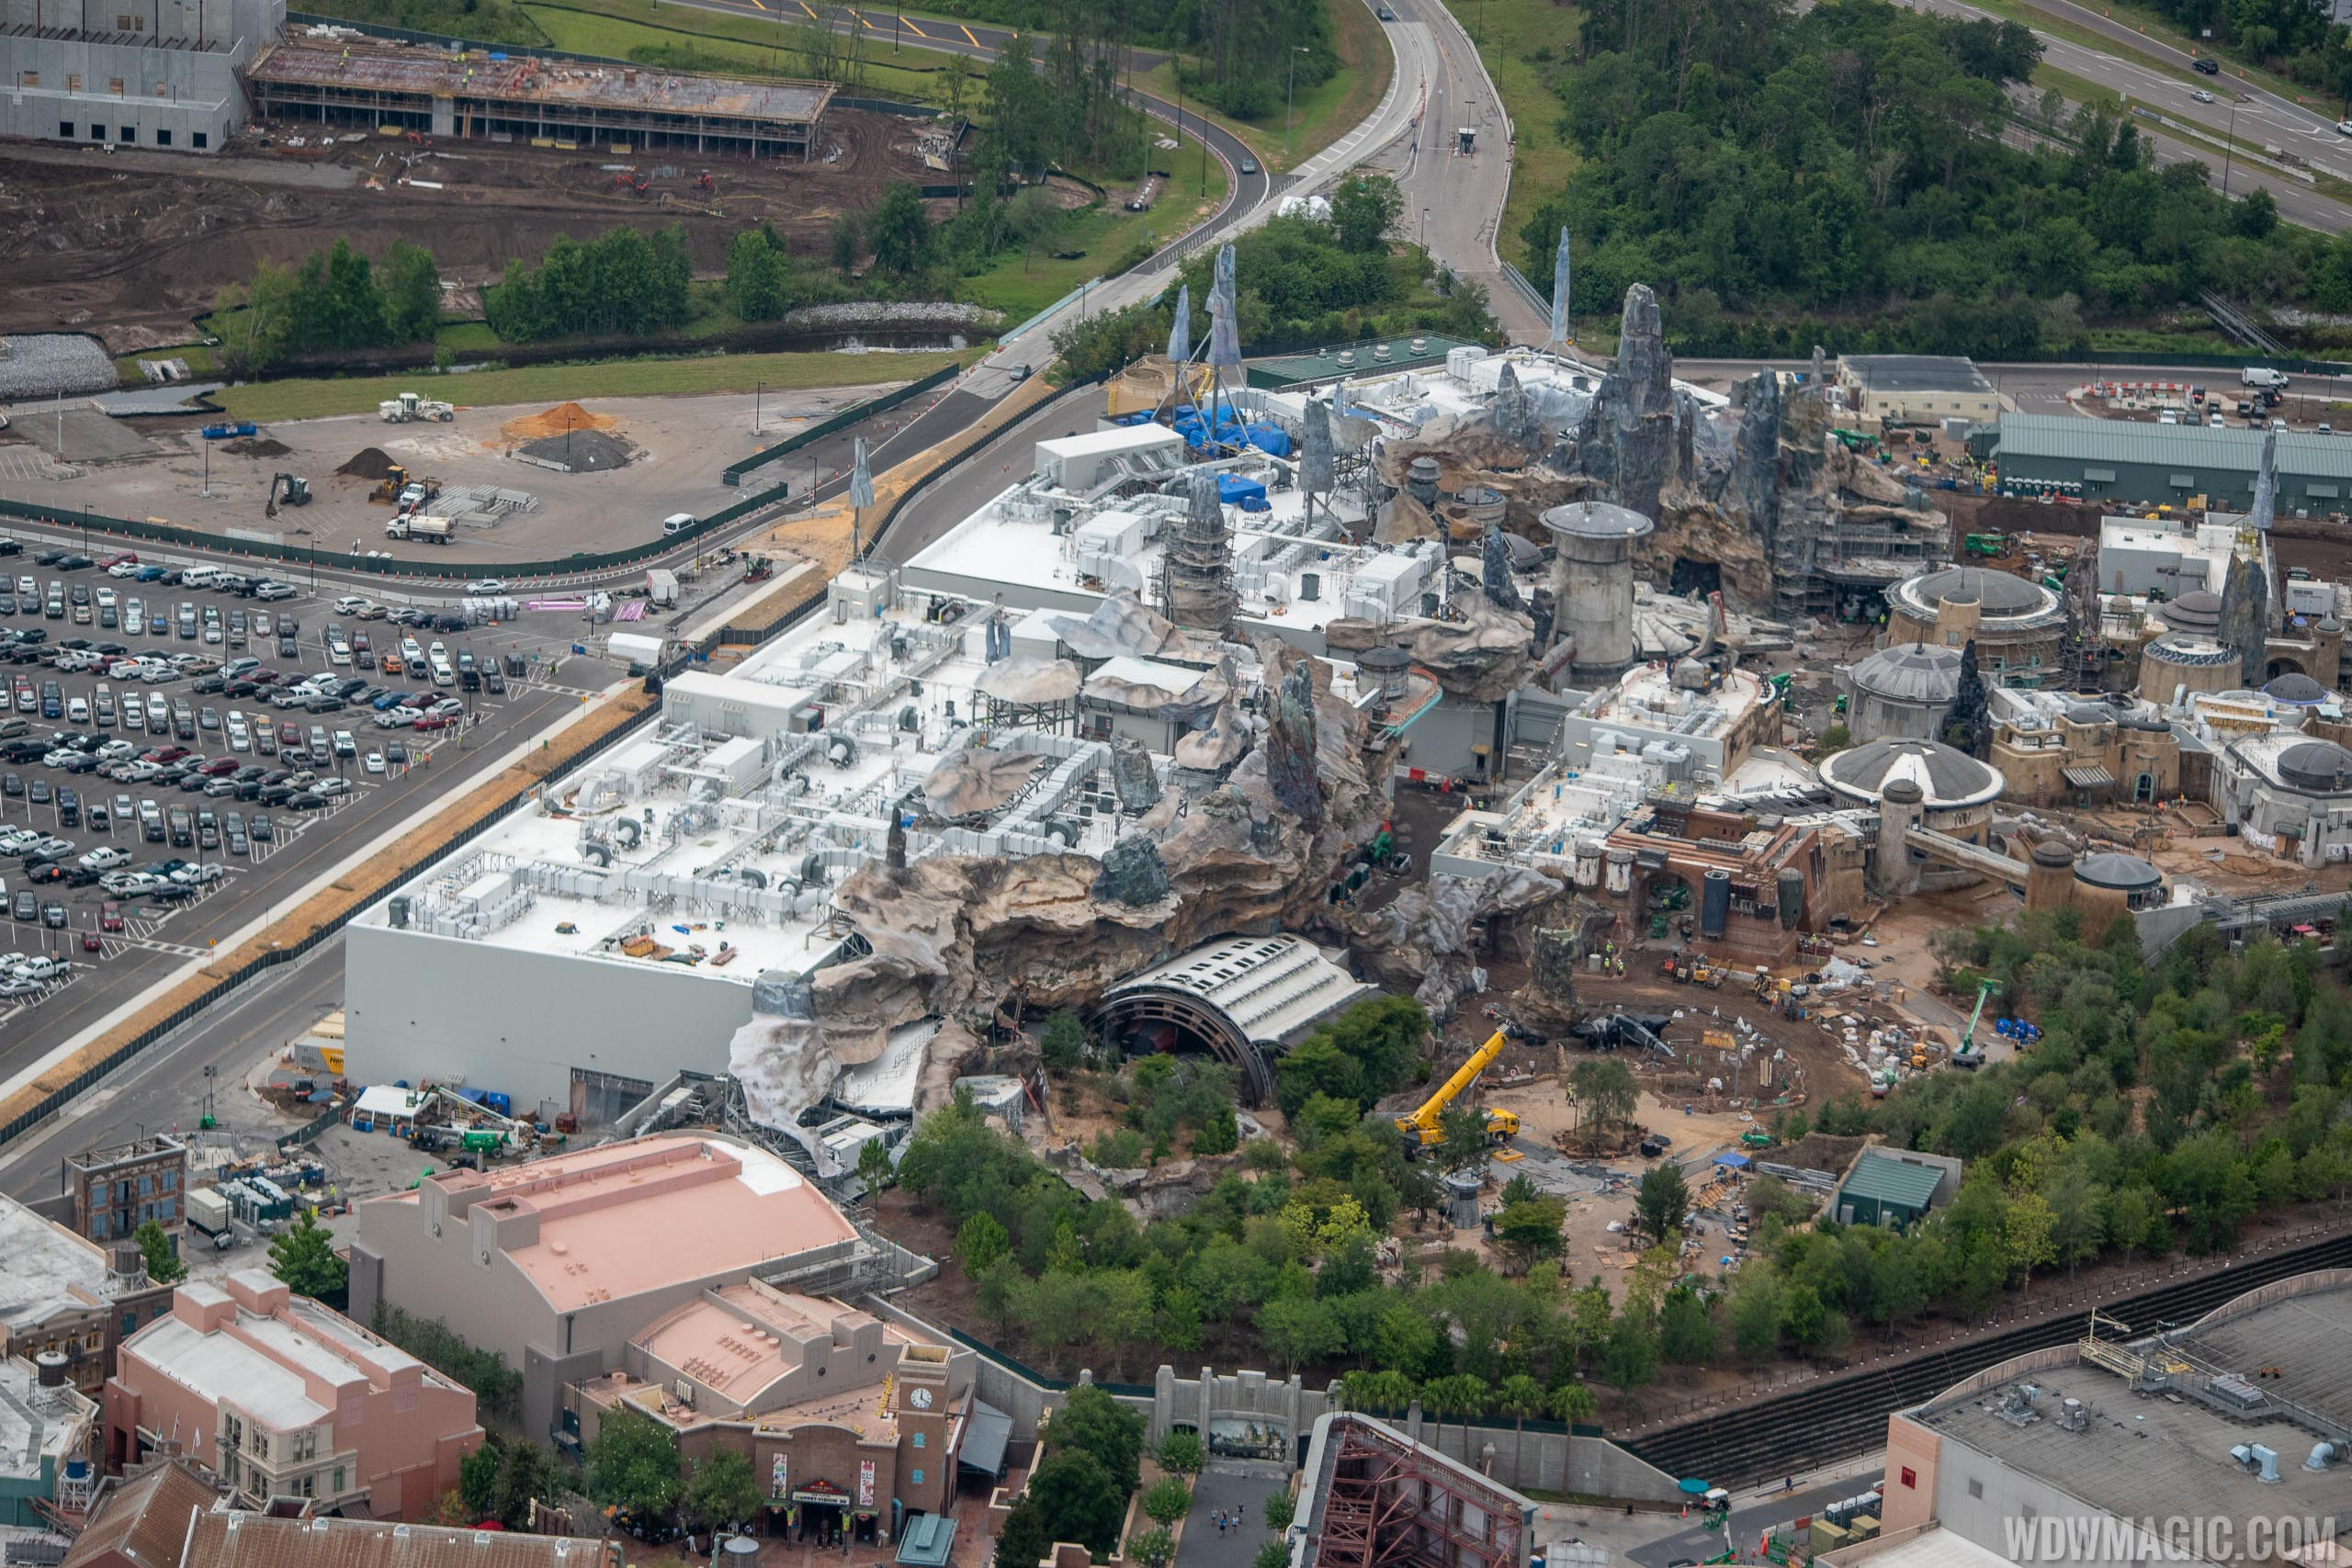 Star Wars hotel construction at Walt Disney World - June 2019